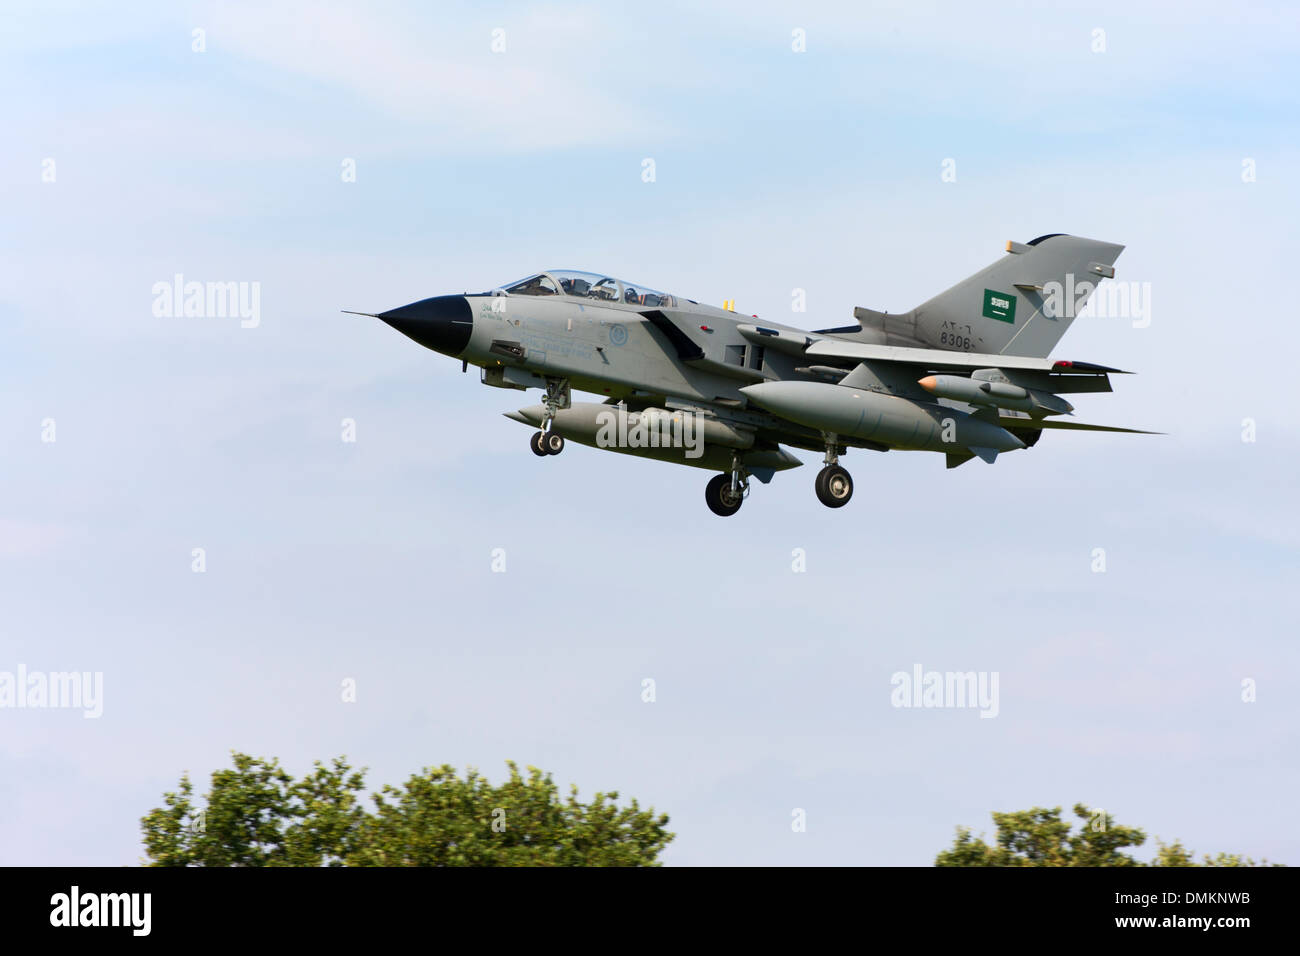 Panavia Tornado IDS 8306 of the Royal Saudi Air Force landing at RAF Conningsby - Stock Image